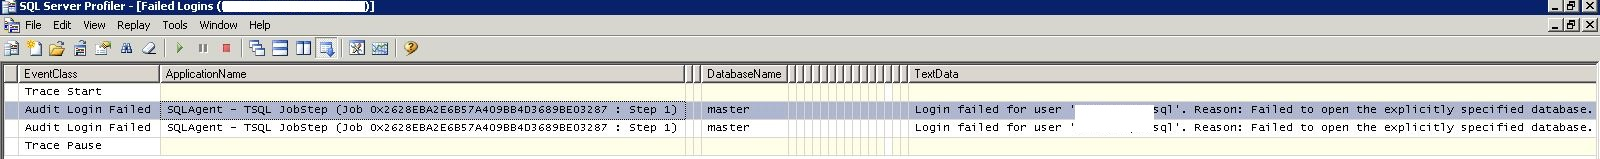 MS SQL: Using Profiler to Trace Failed Logins – KimConnect com